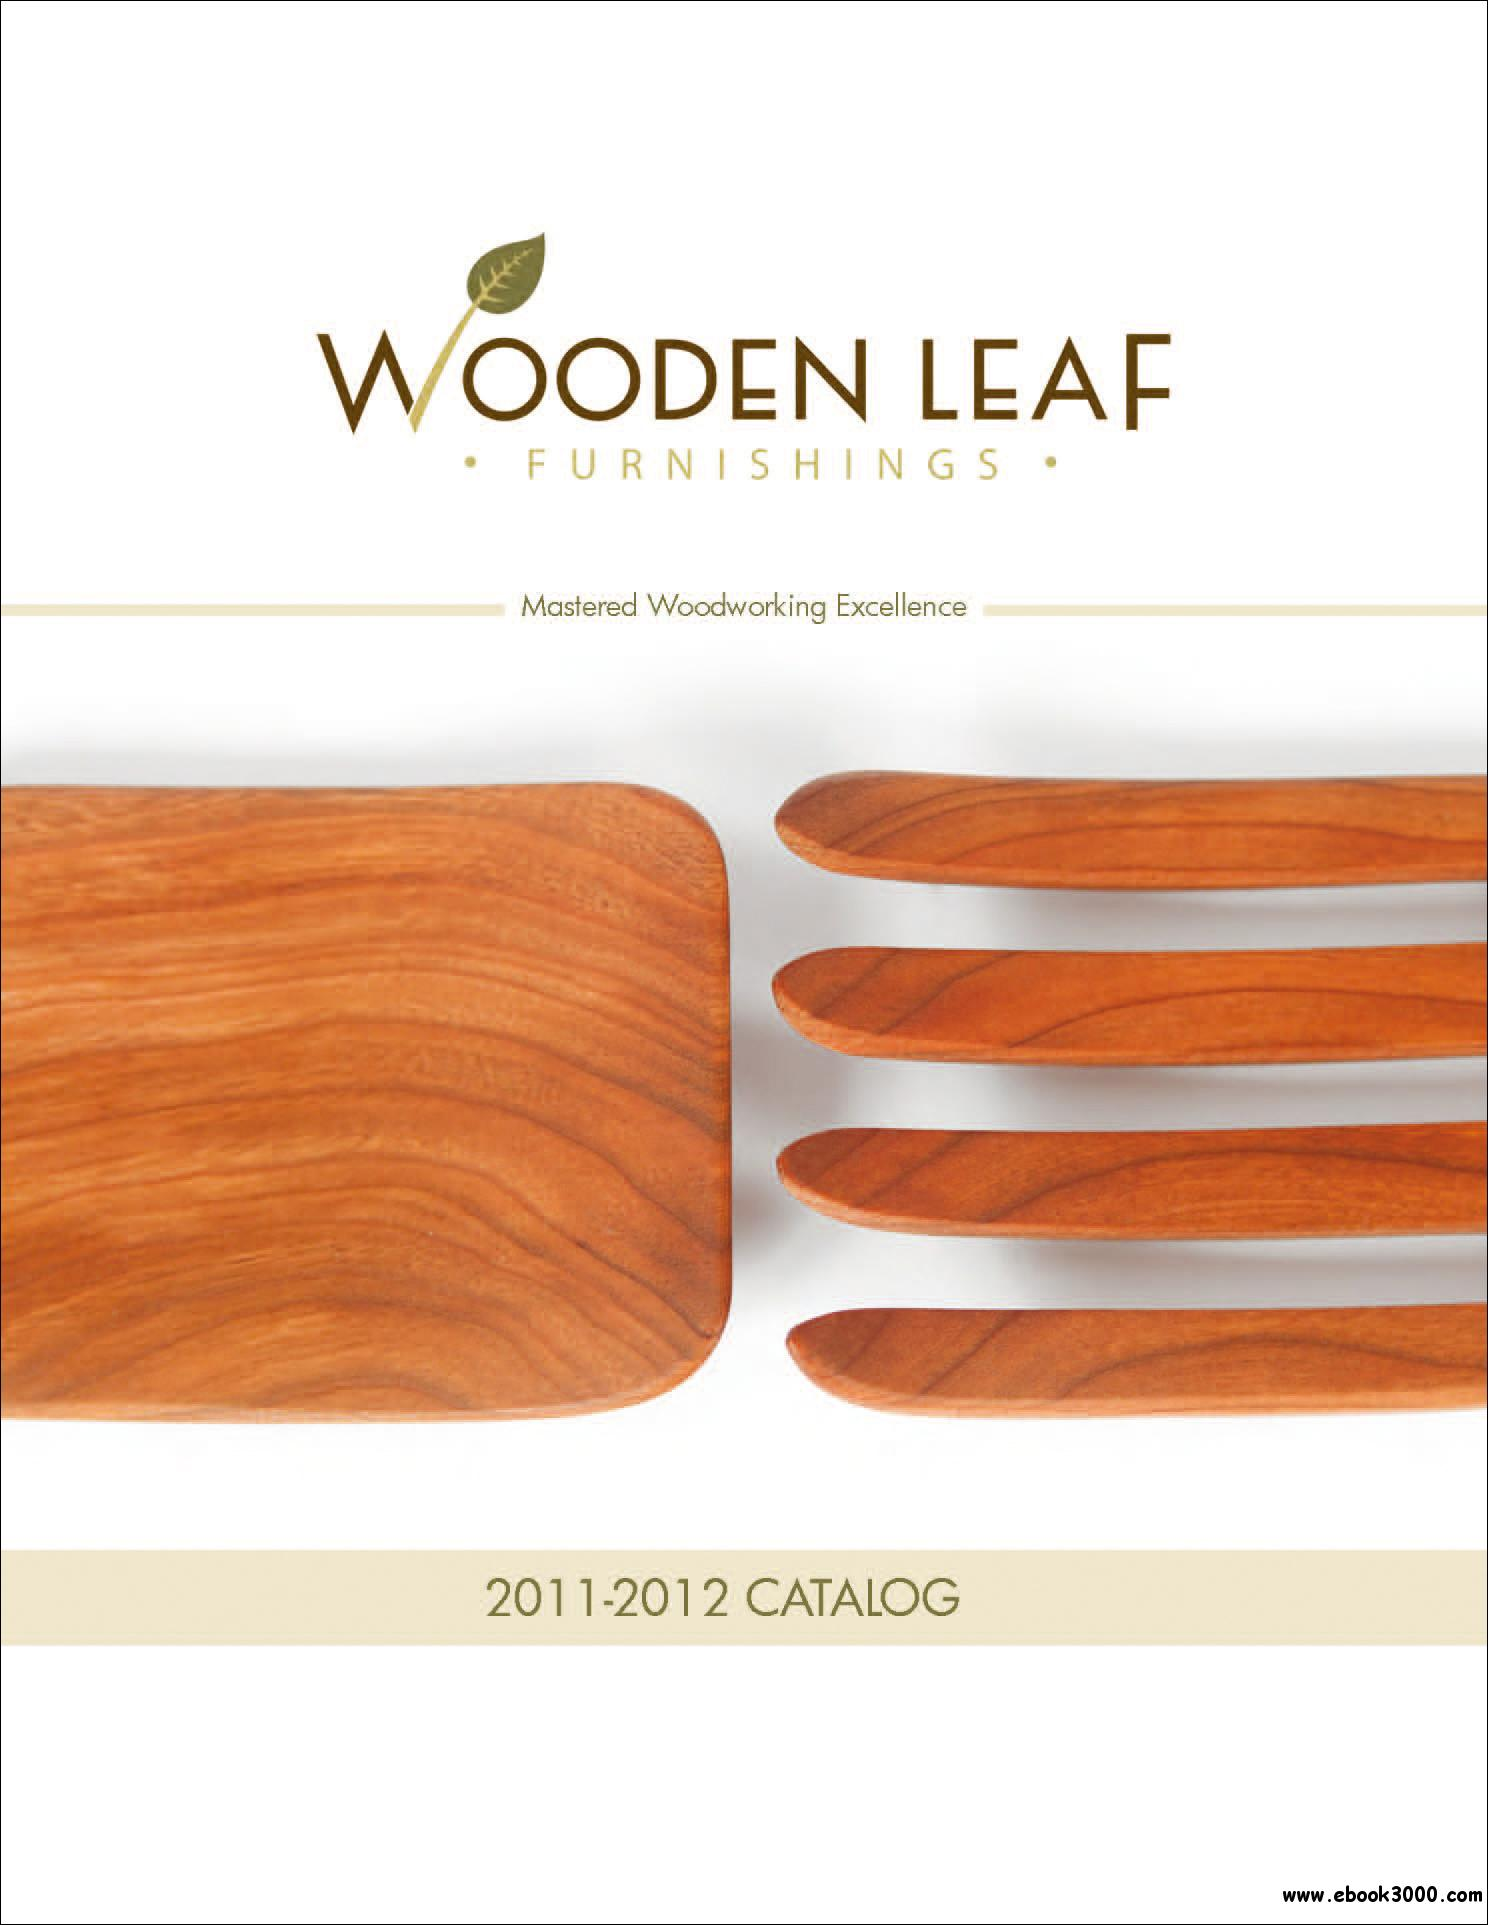 Wooden Leaf Furnishings Catalog 2011-2012 free download